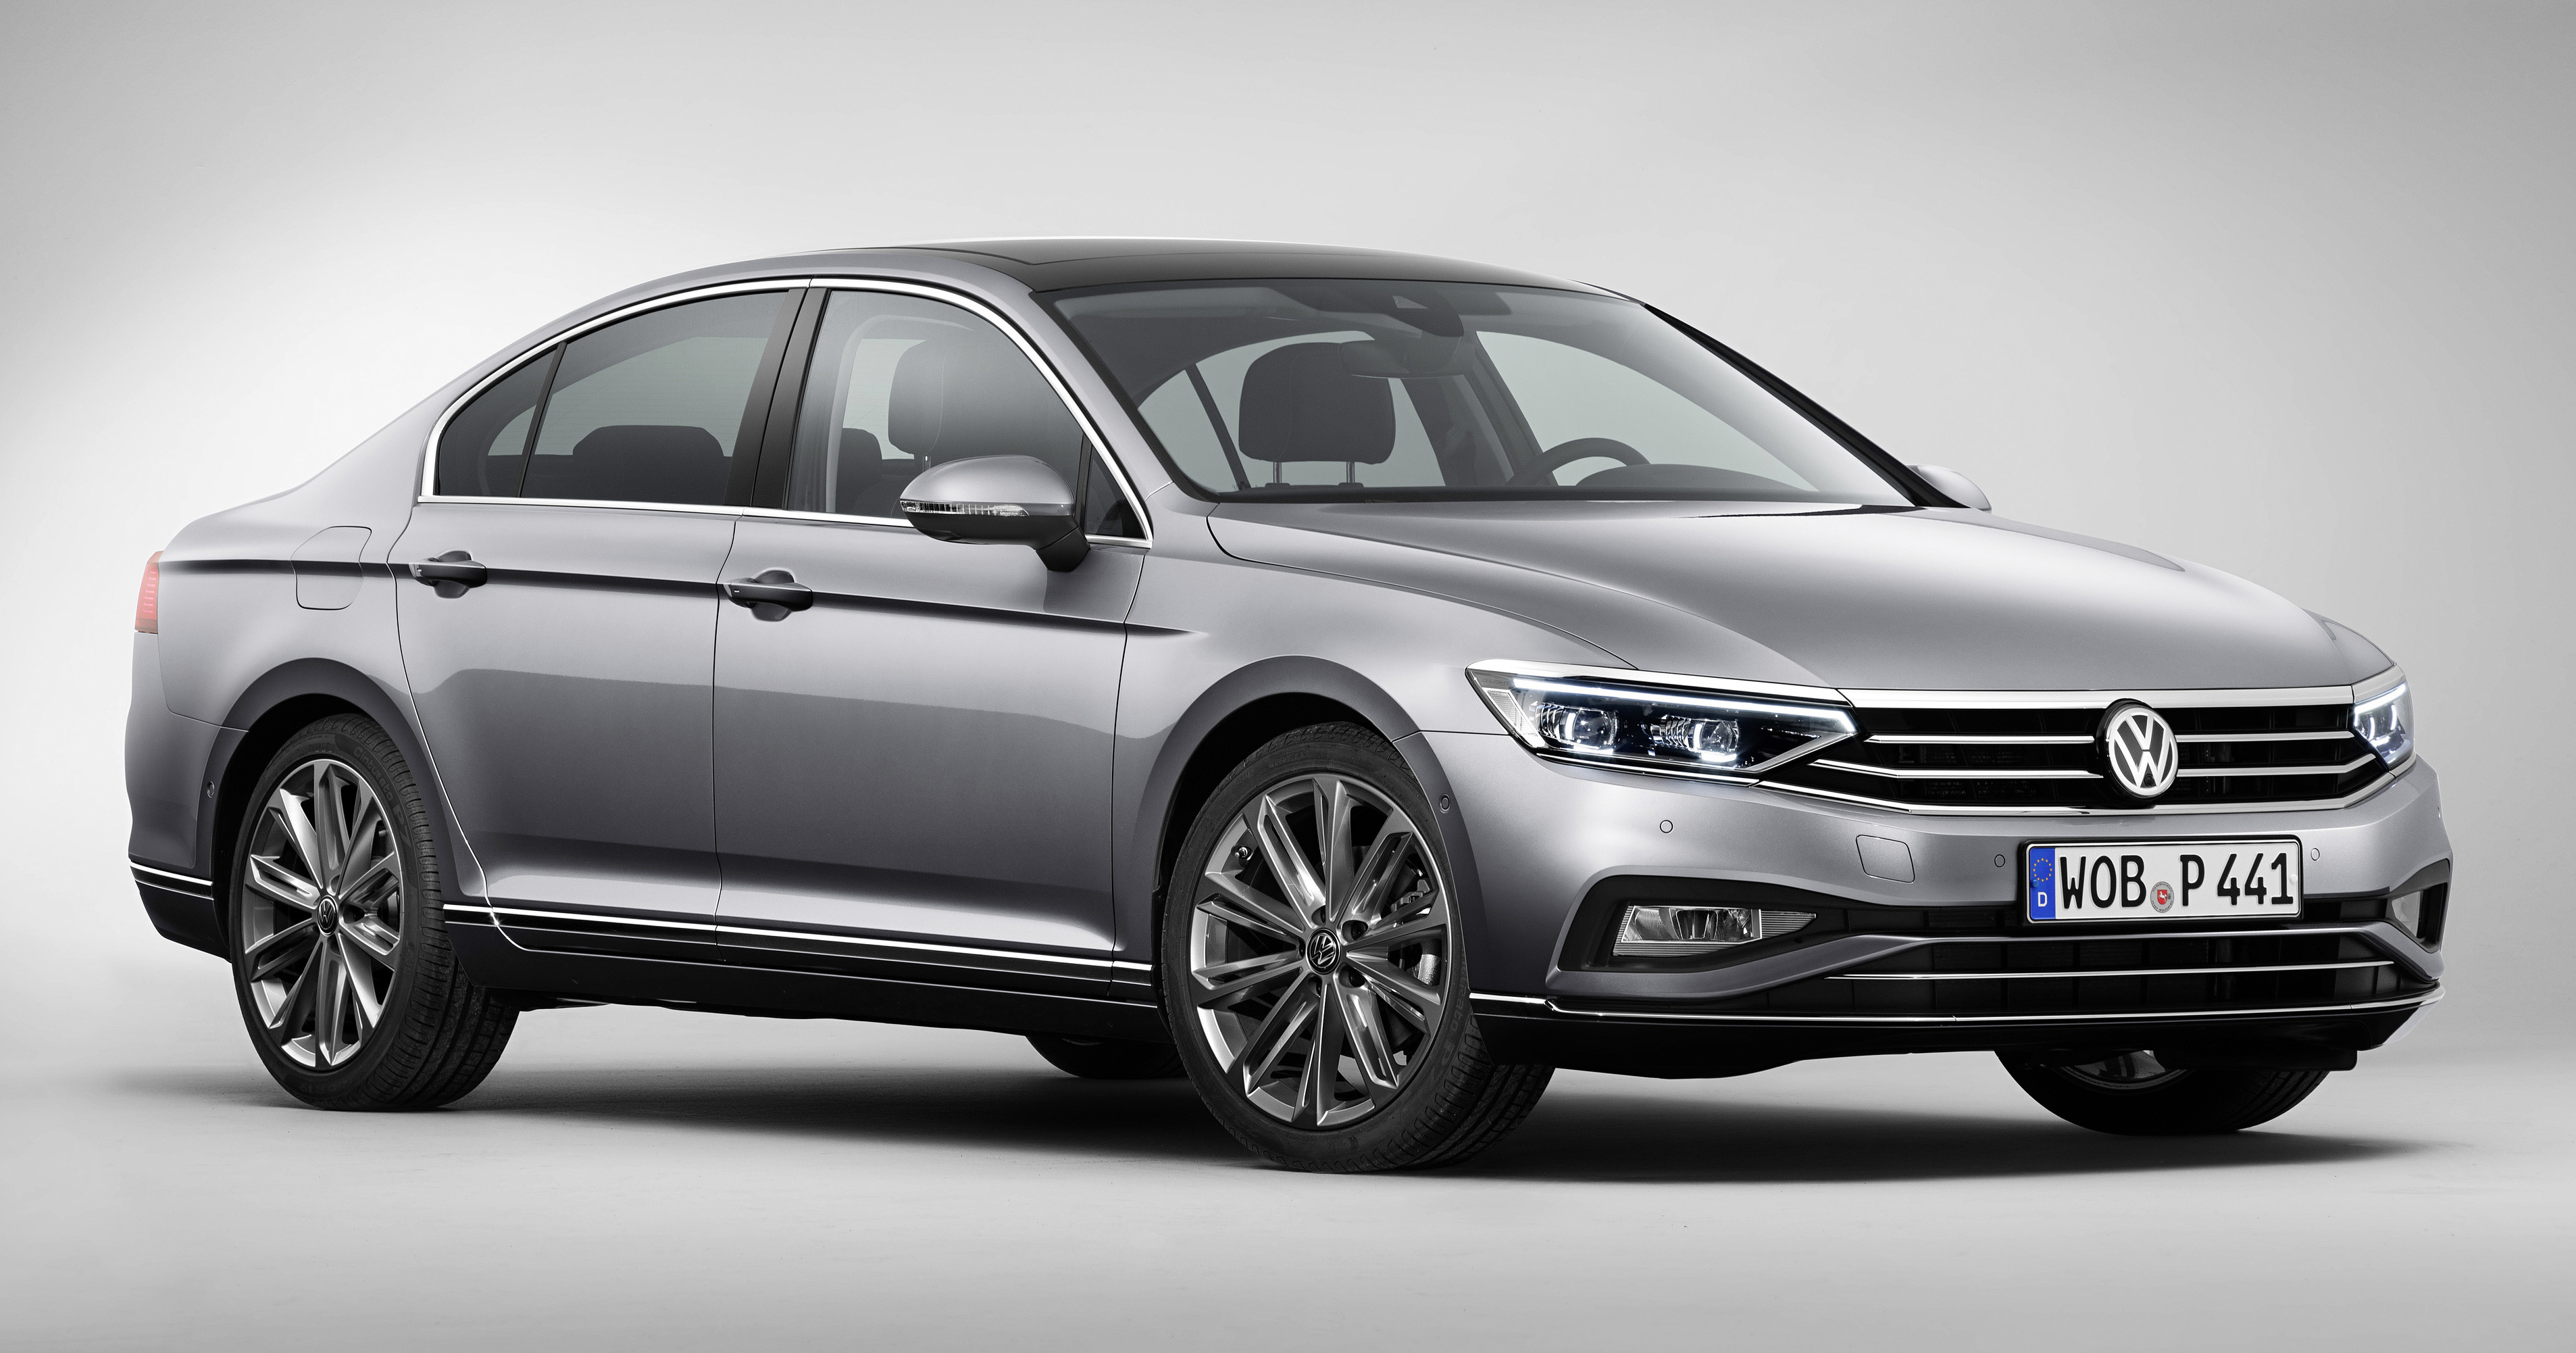 B8 Volkswagen Passat Facelift Revealed New Mib3 Infotainment And Iq Drive Assistance Systems Paultan Org